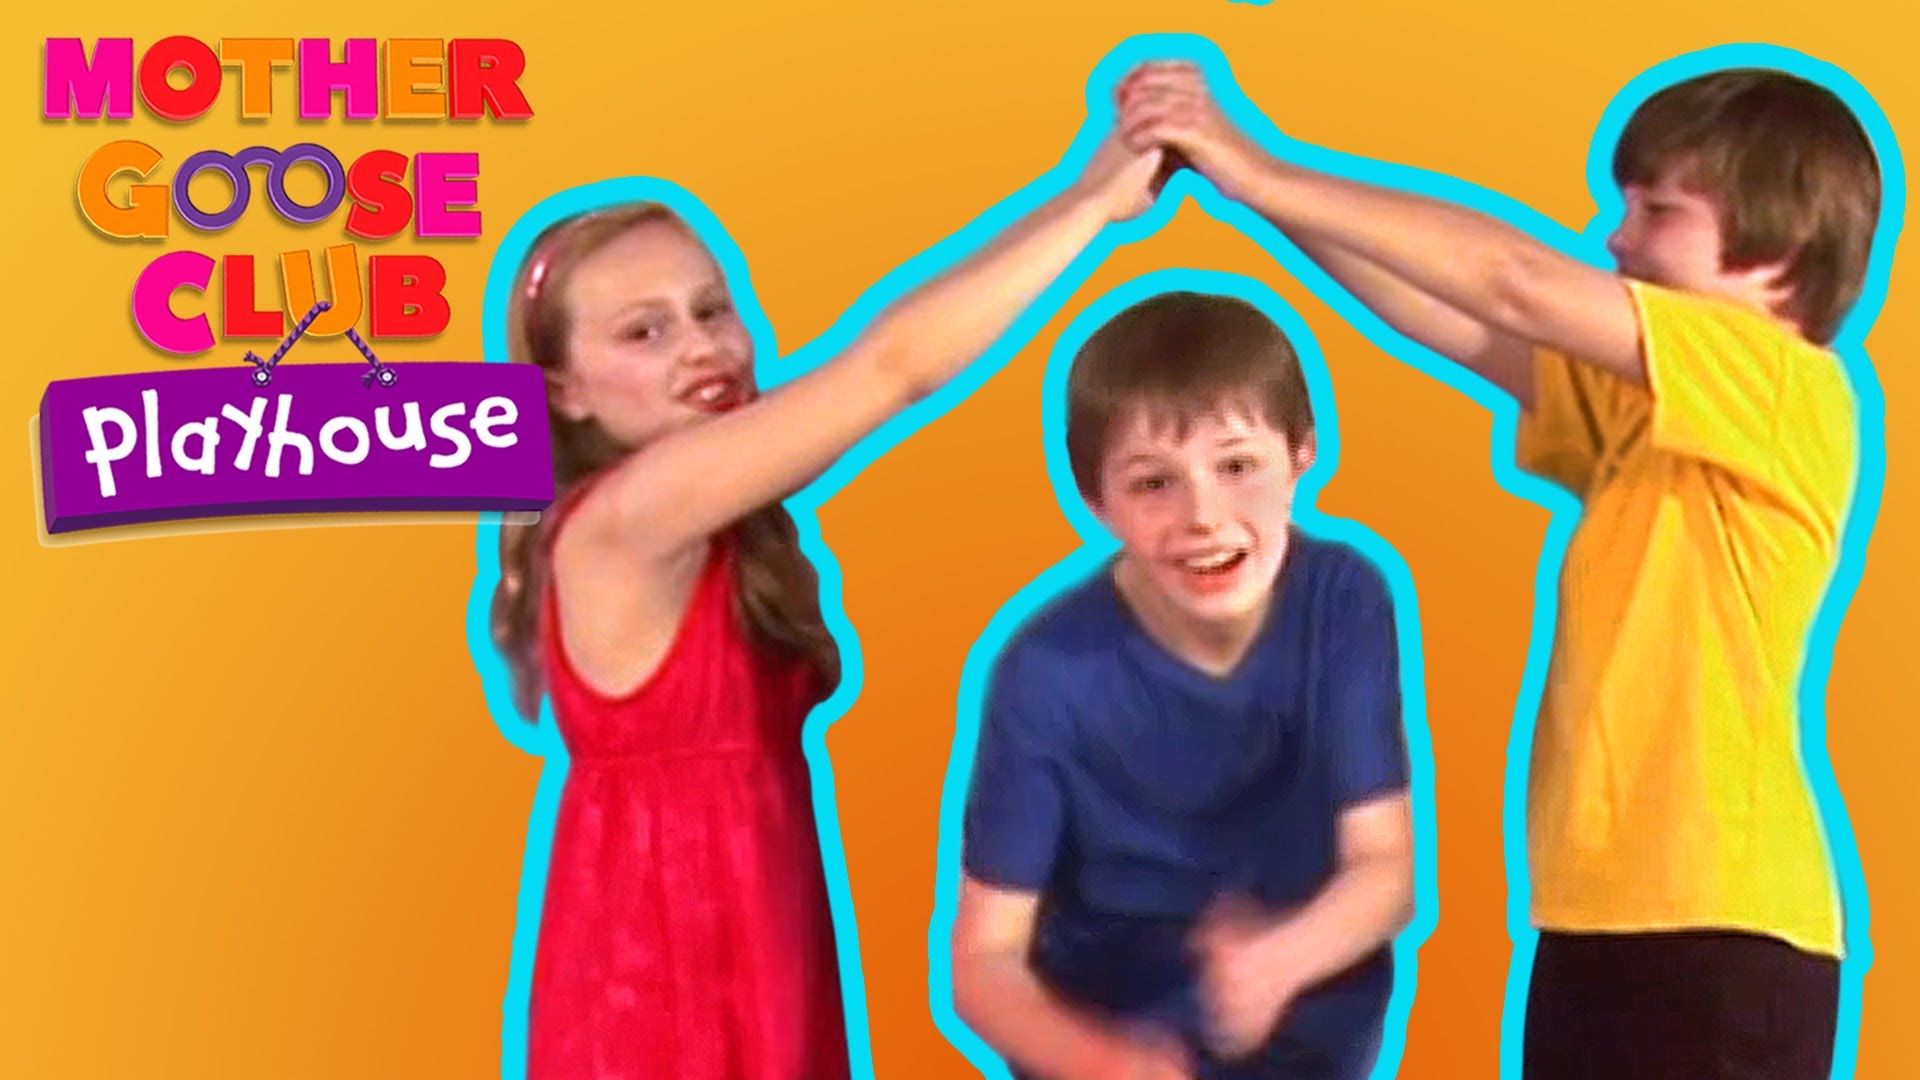 London Bridge Is Falling Down – Mother Goose Club Playhouse Kids Video